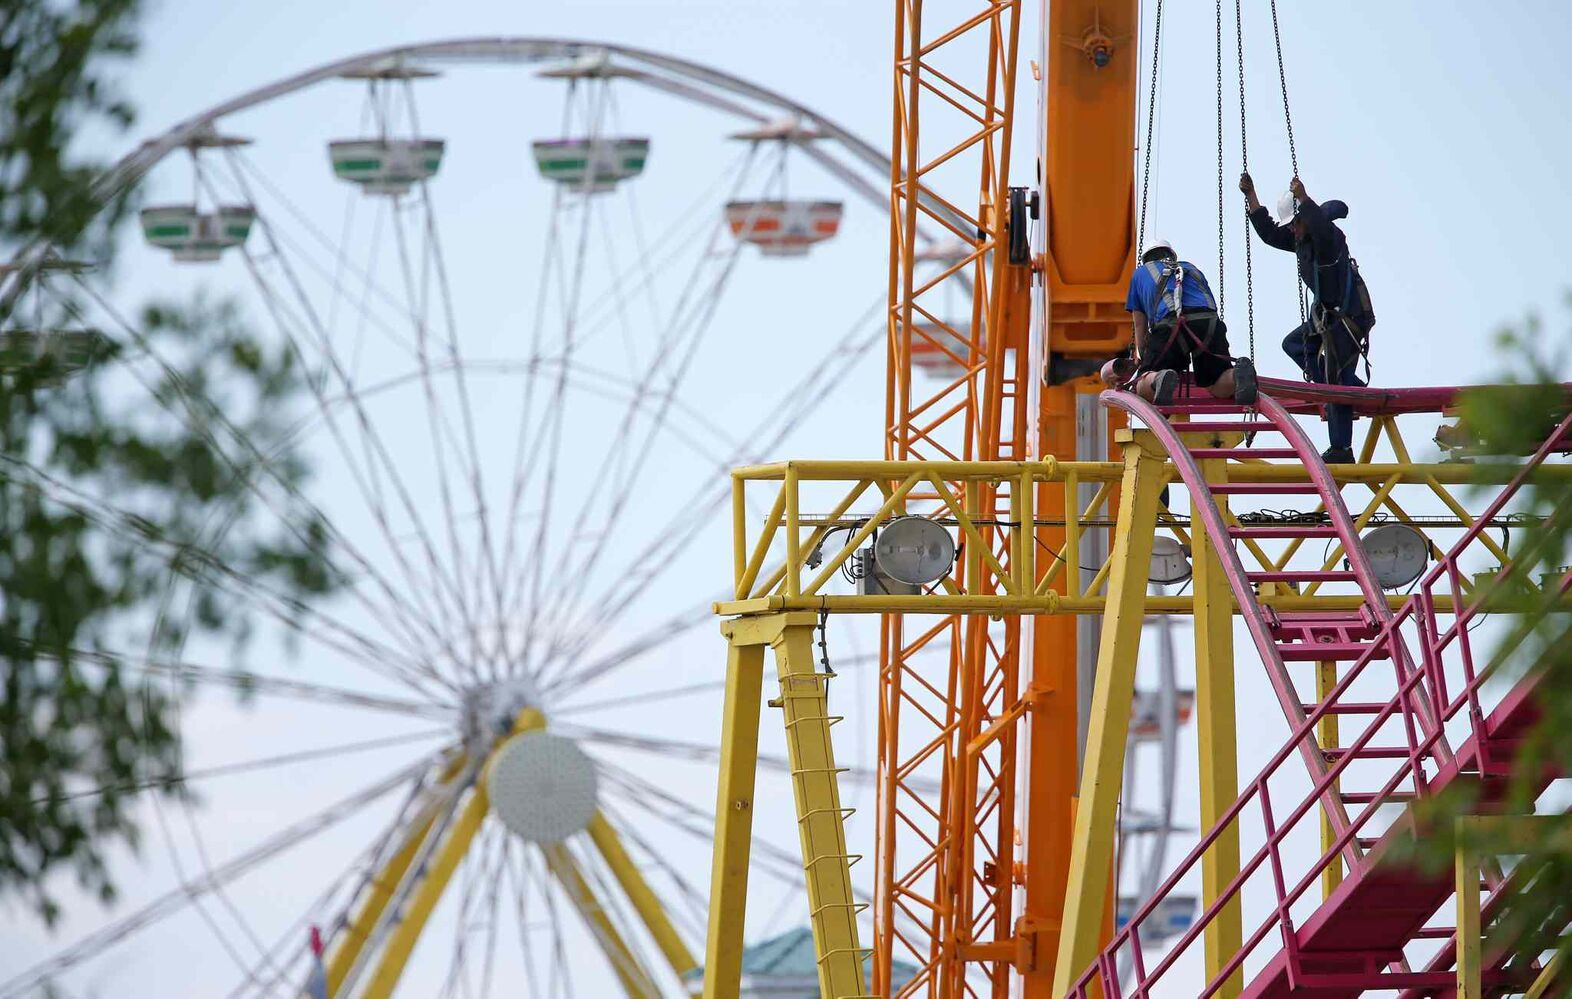 Workers assemble part of the Crazy Mouse Rollercoaster at Red River Exhibition Park prior to the Ex, which runs June 13 to June 22. (TREVOR HAGAN/WINNIPEG FREE PRESS)